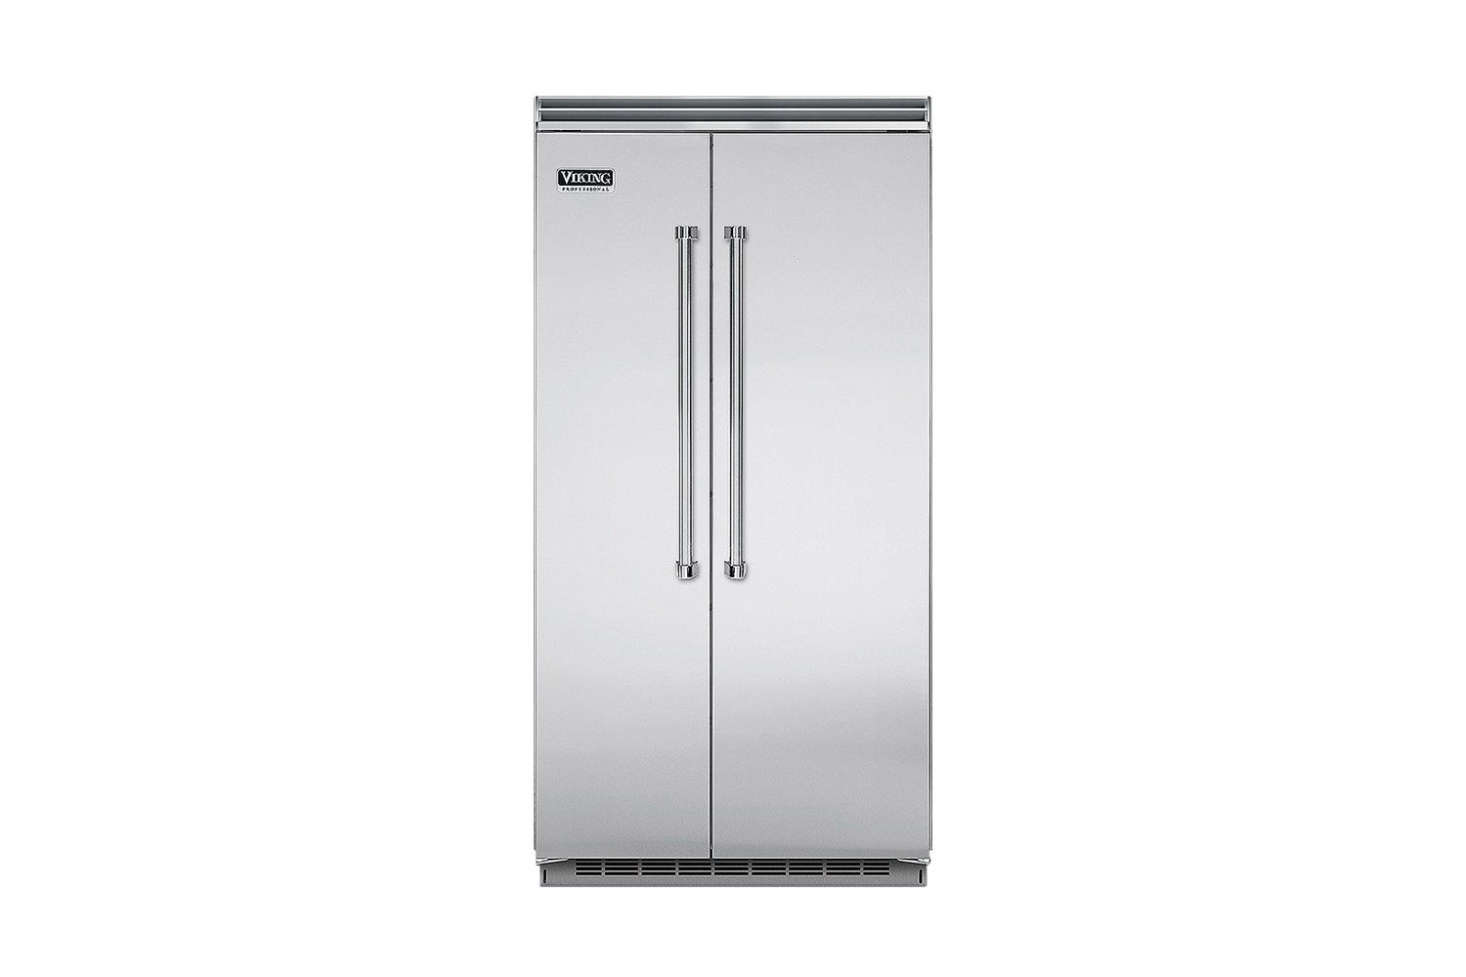 The Viking Side-by-Side Stainless Steel Refrigerator (VCSB54SS) is $9,889 at Designer Appliances.